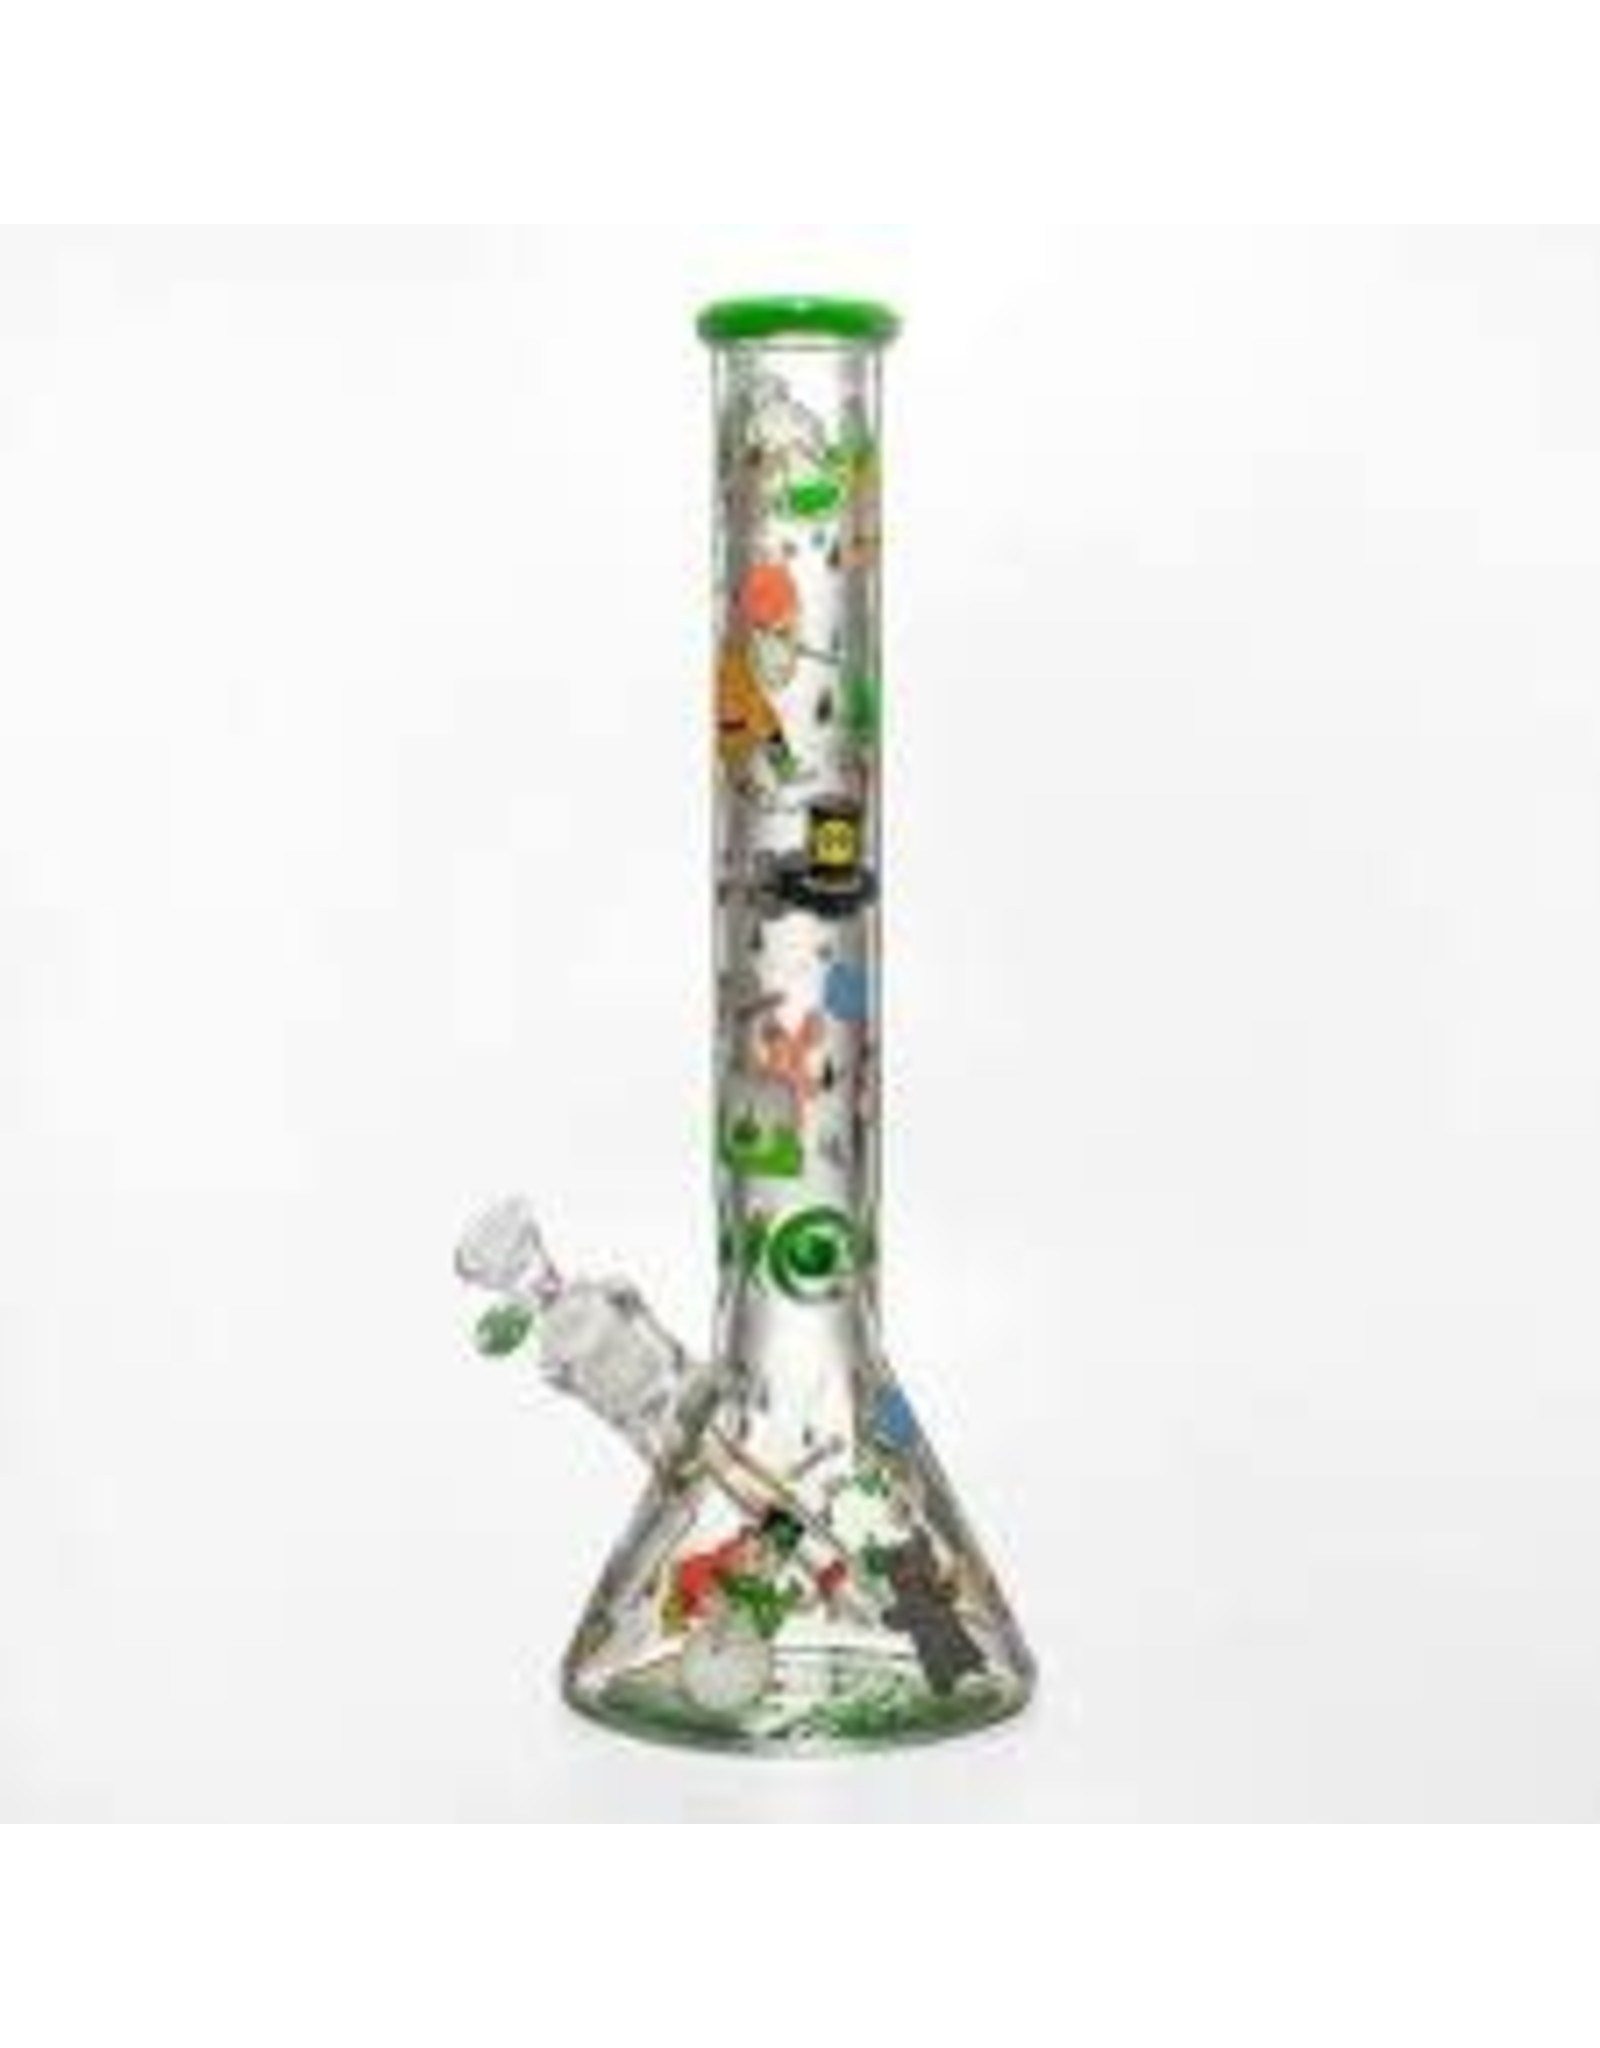 CHEECH GLASS CHEECH GLASS CA-016 STONER DAZE BEAKER